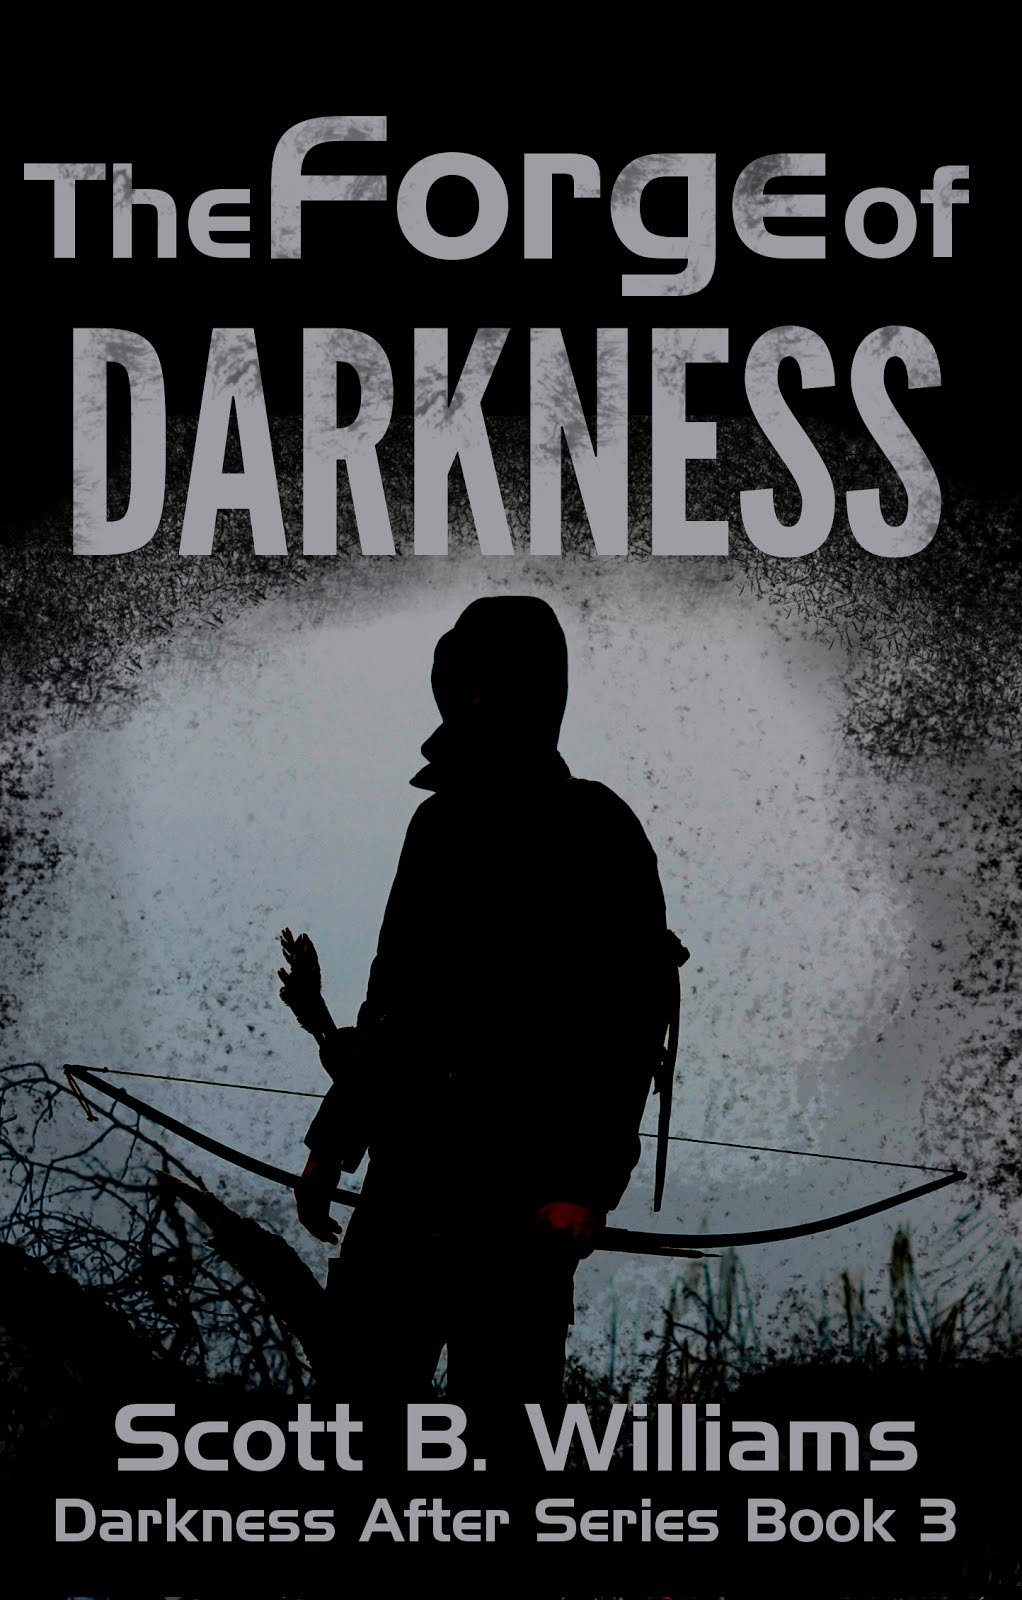 Available Now! Book III of The Darkness After Series